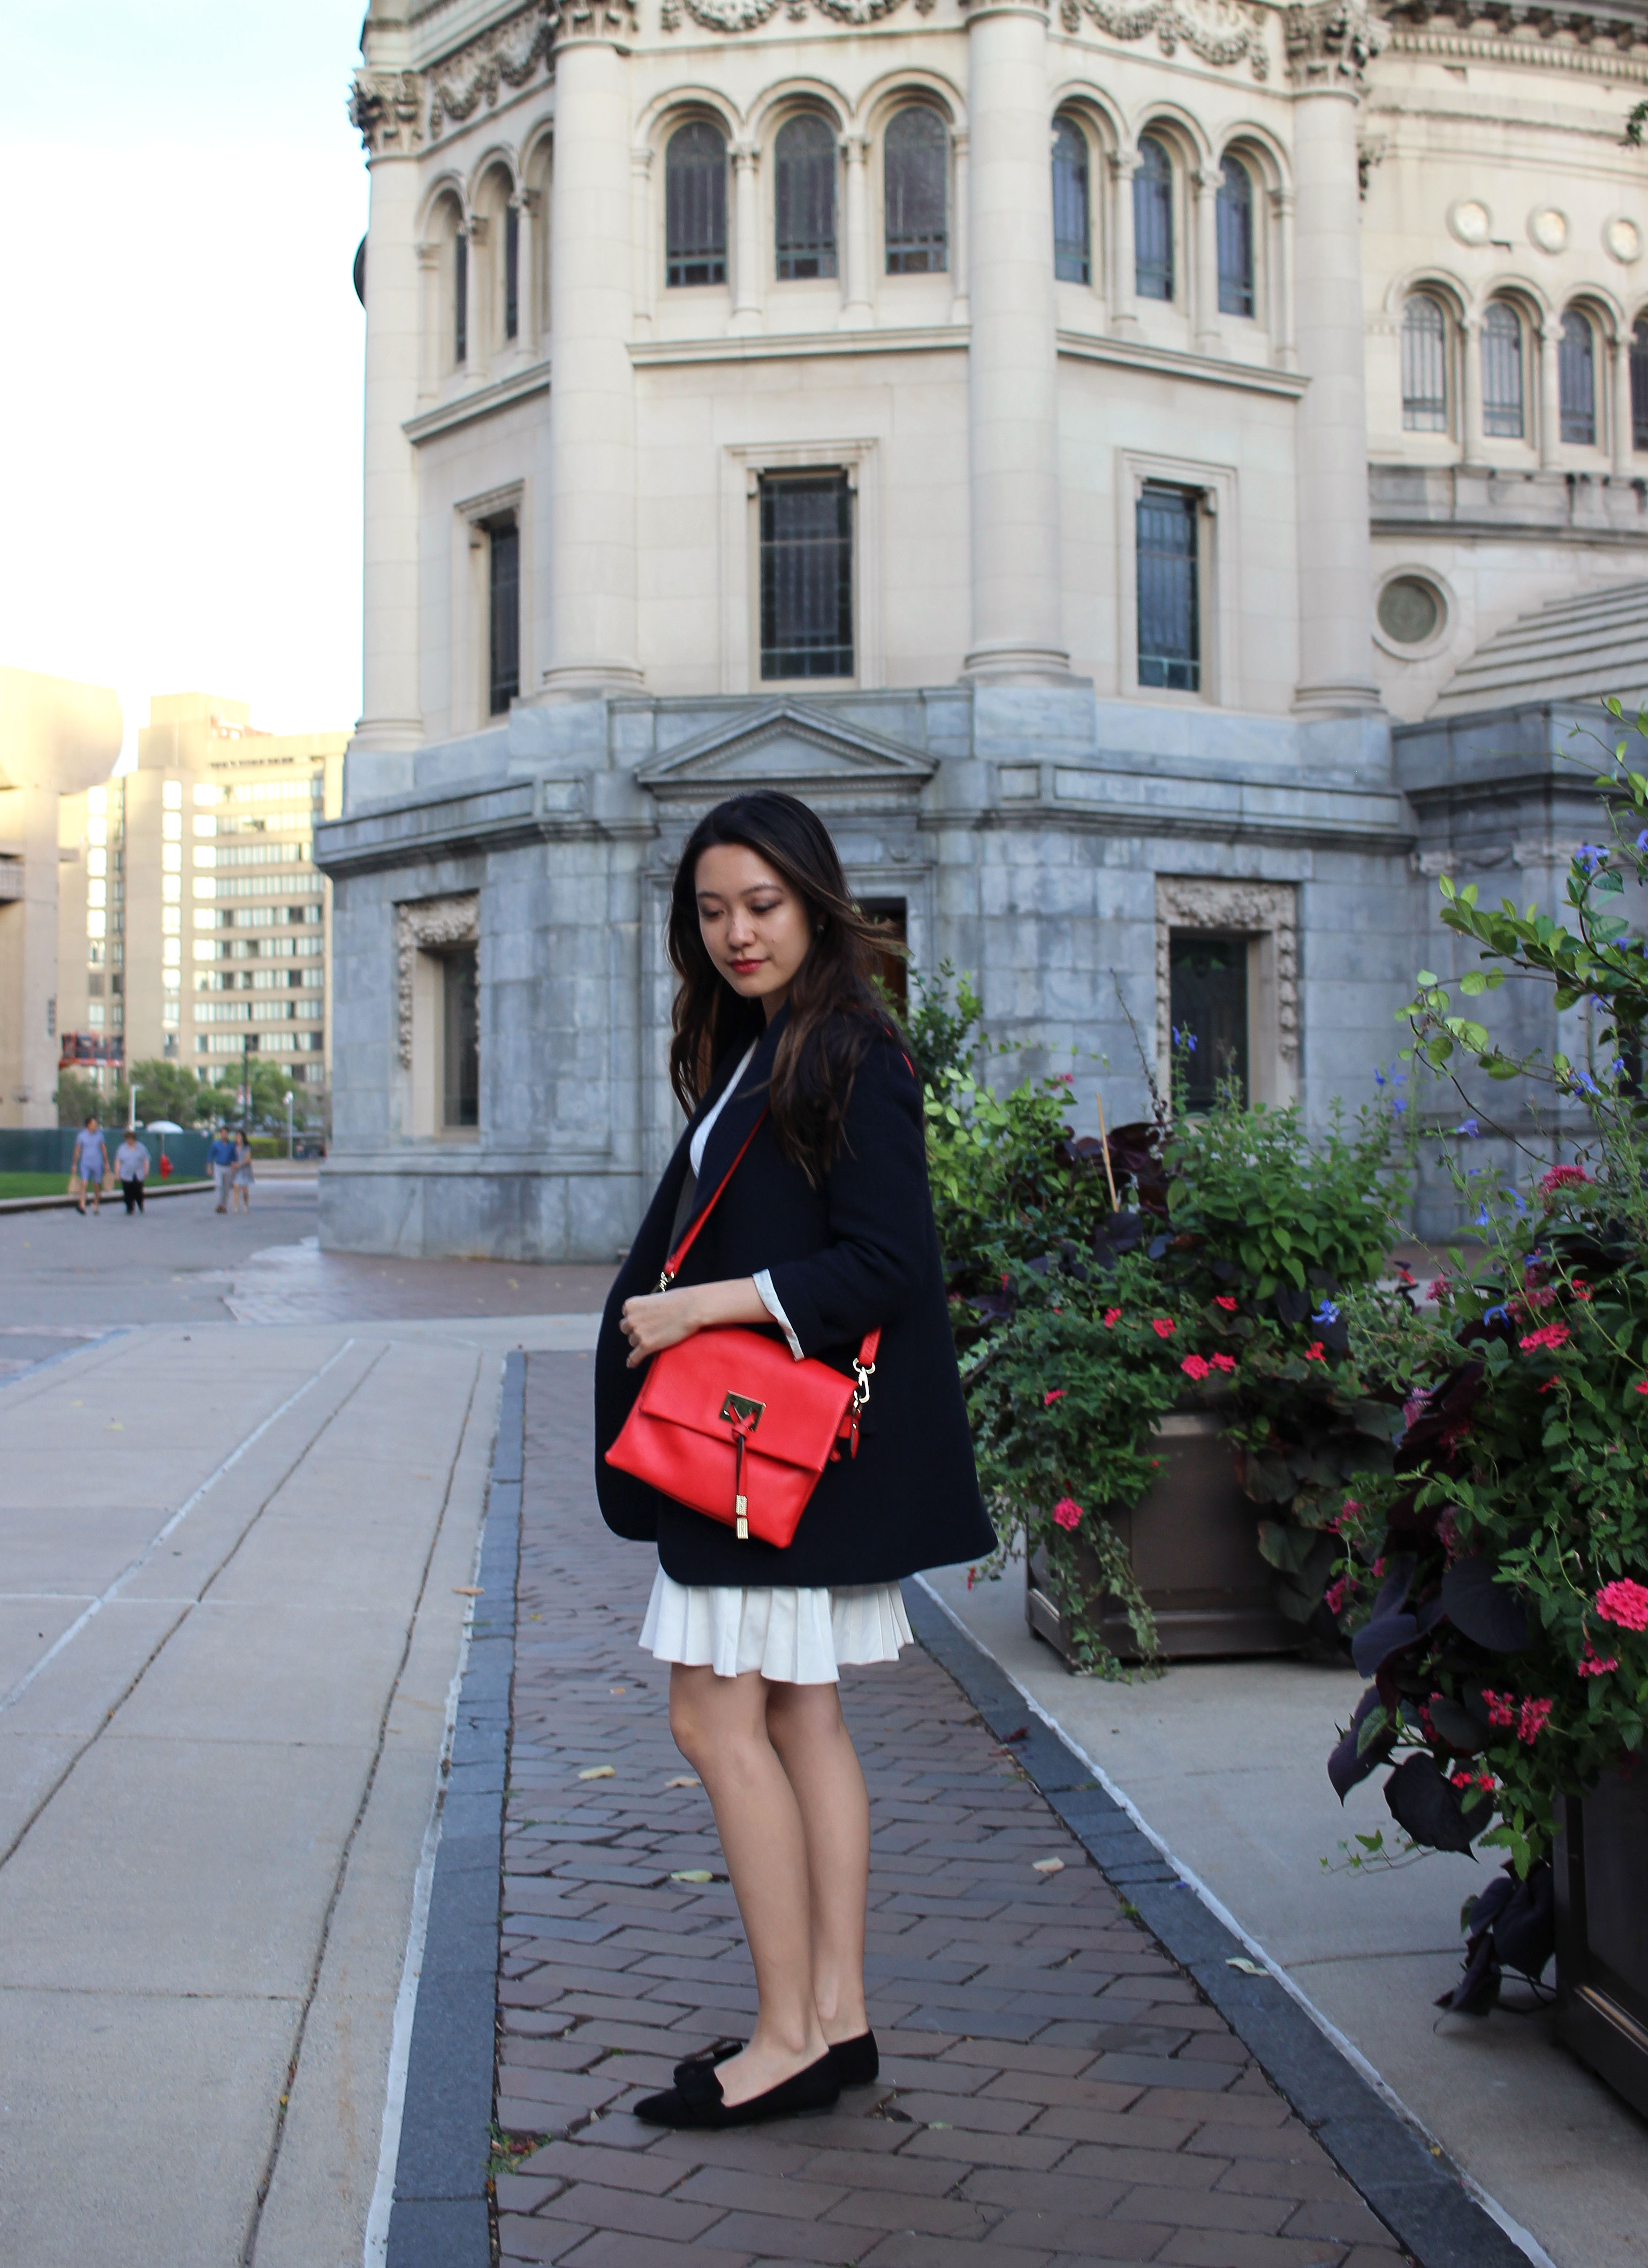 Fall French inspired outfits with navy blazer and red square flap bag